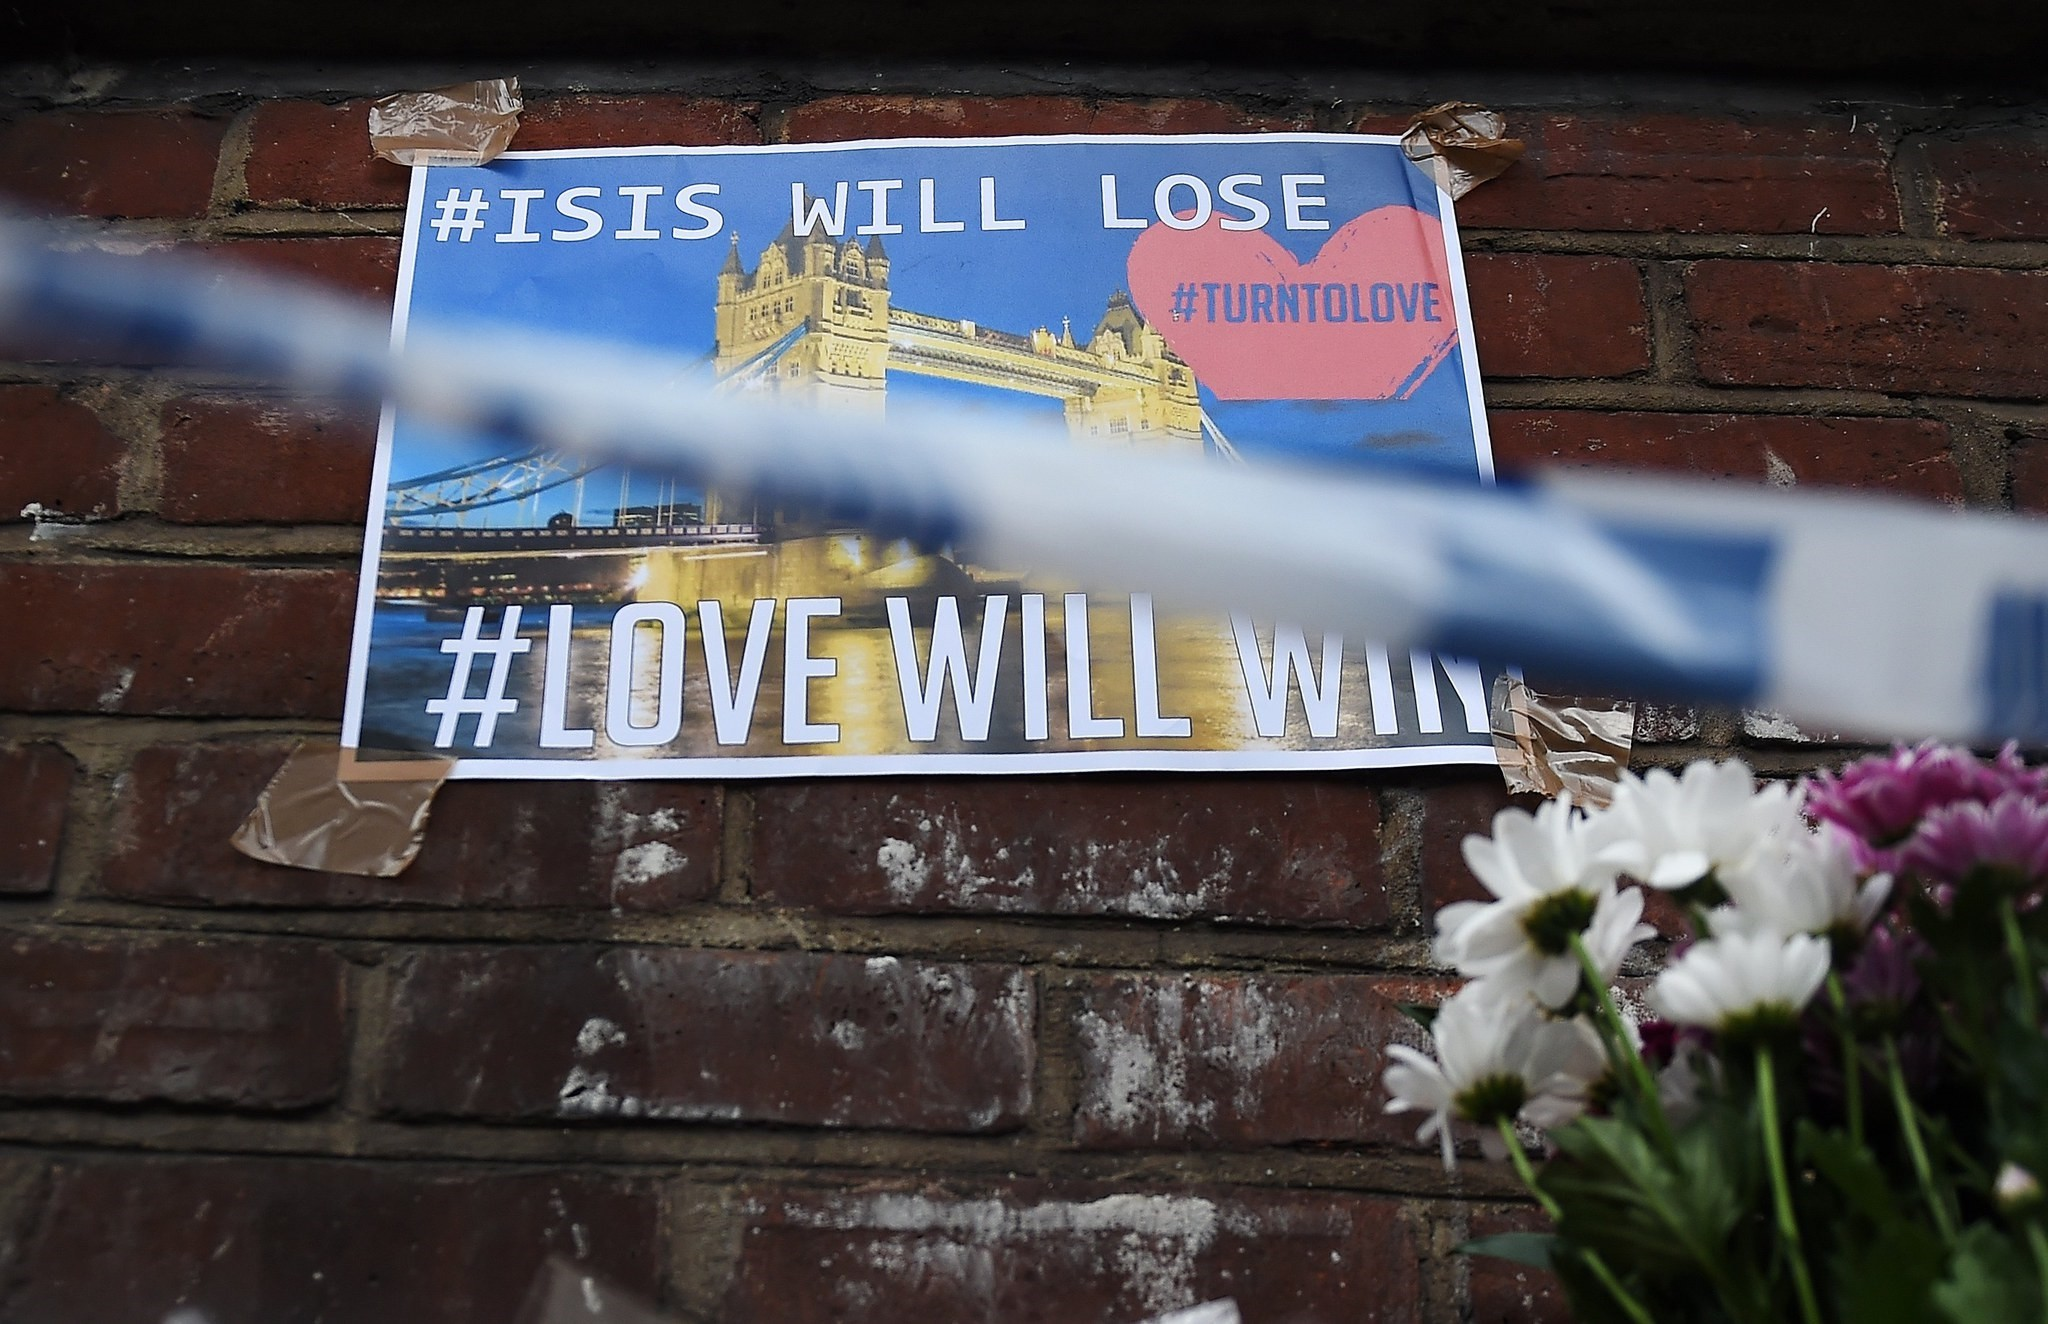 An anti-Daesh poster seen near Borough Market, in the aftermath of multiple June 3 attacks, London, Britain.